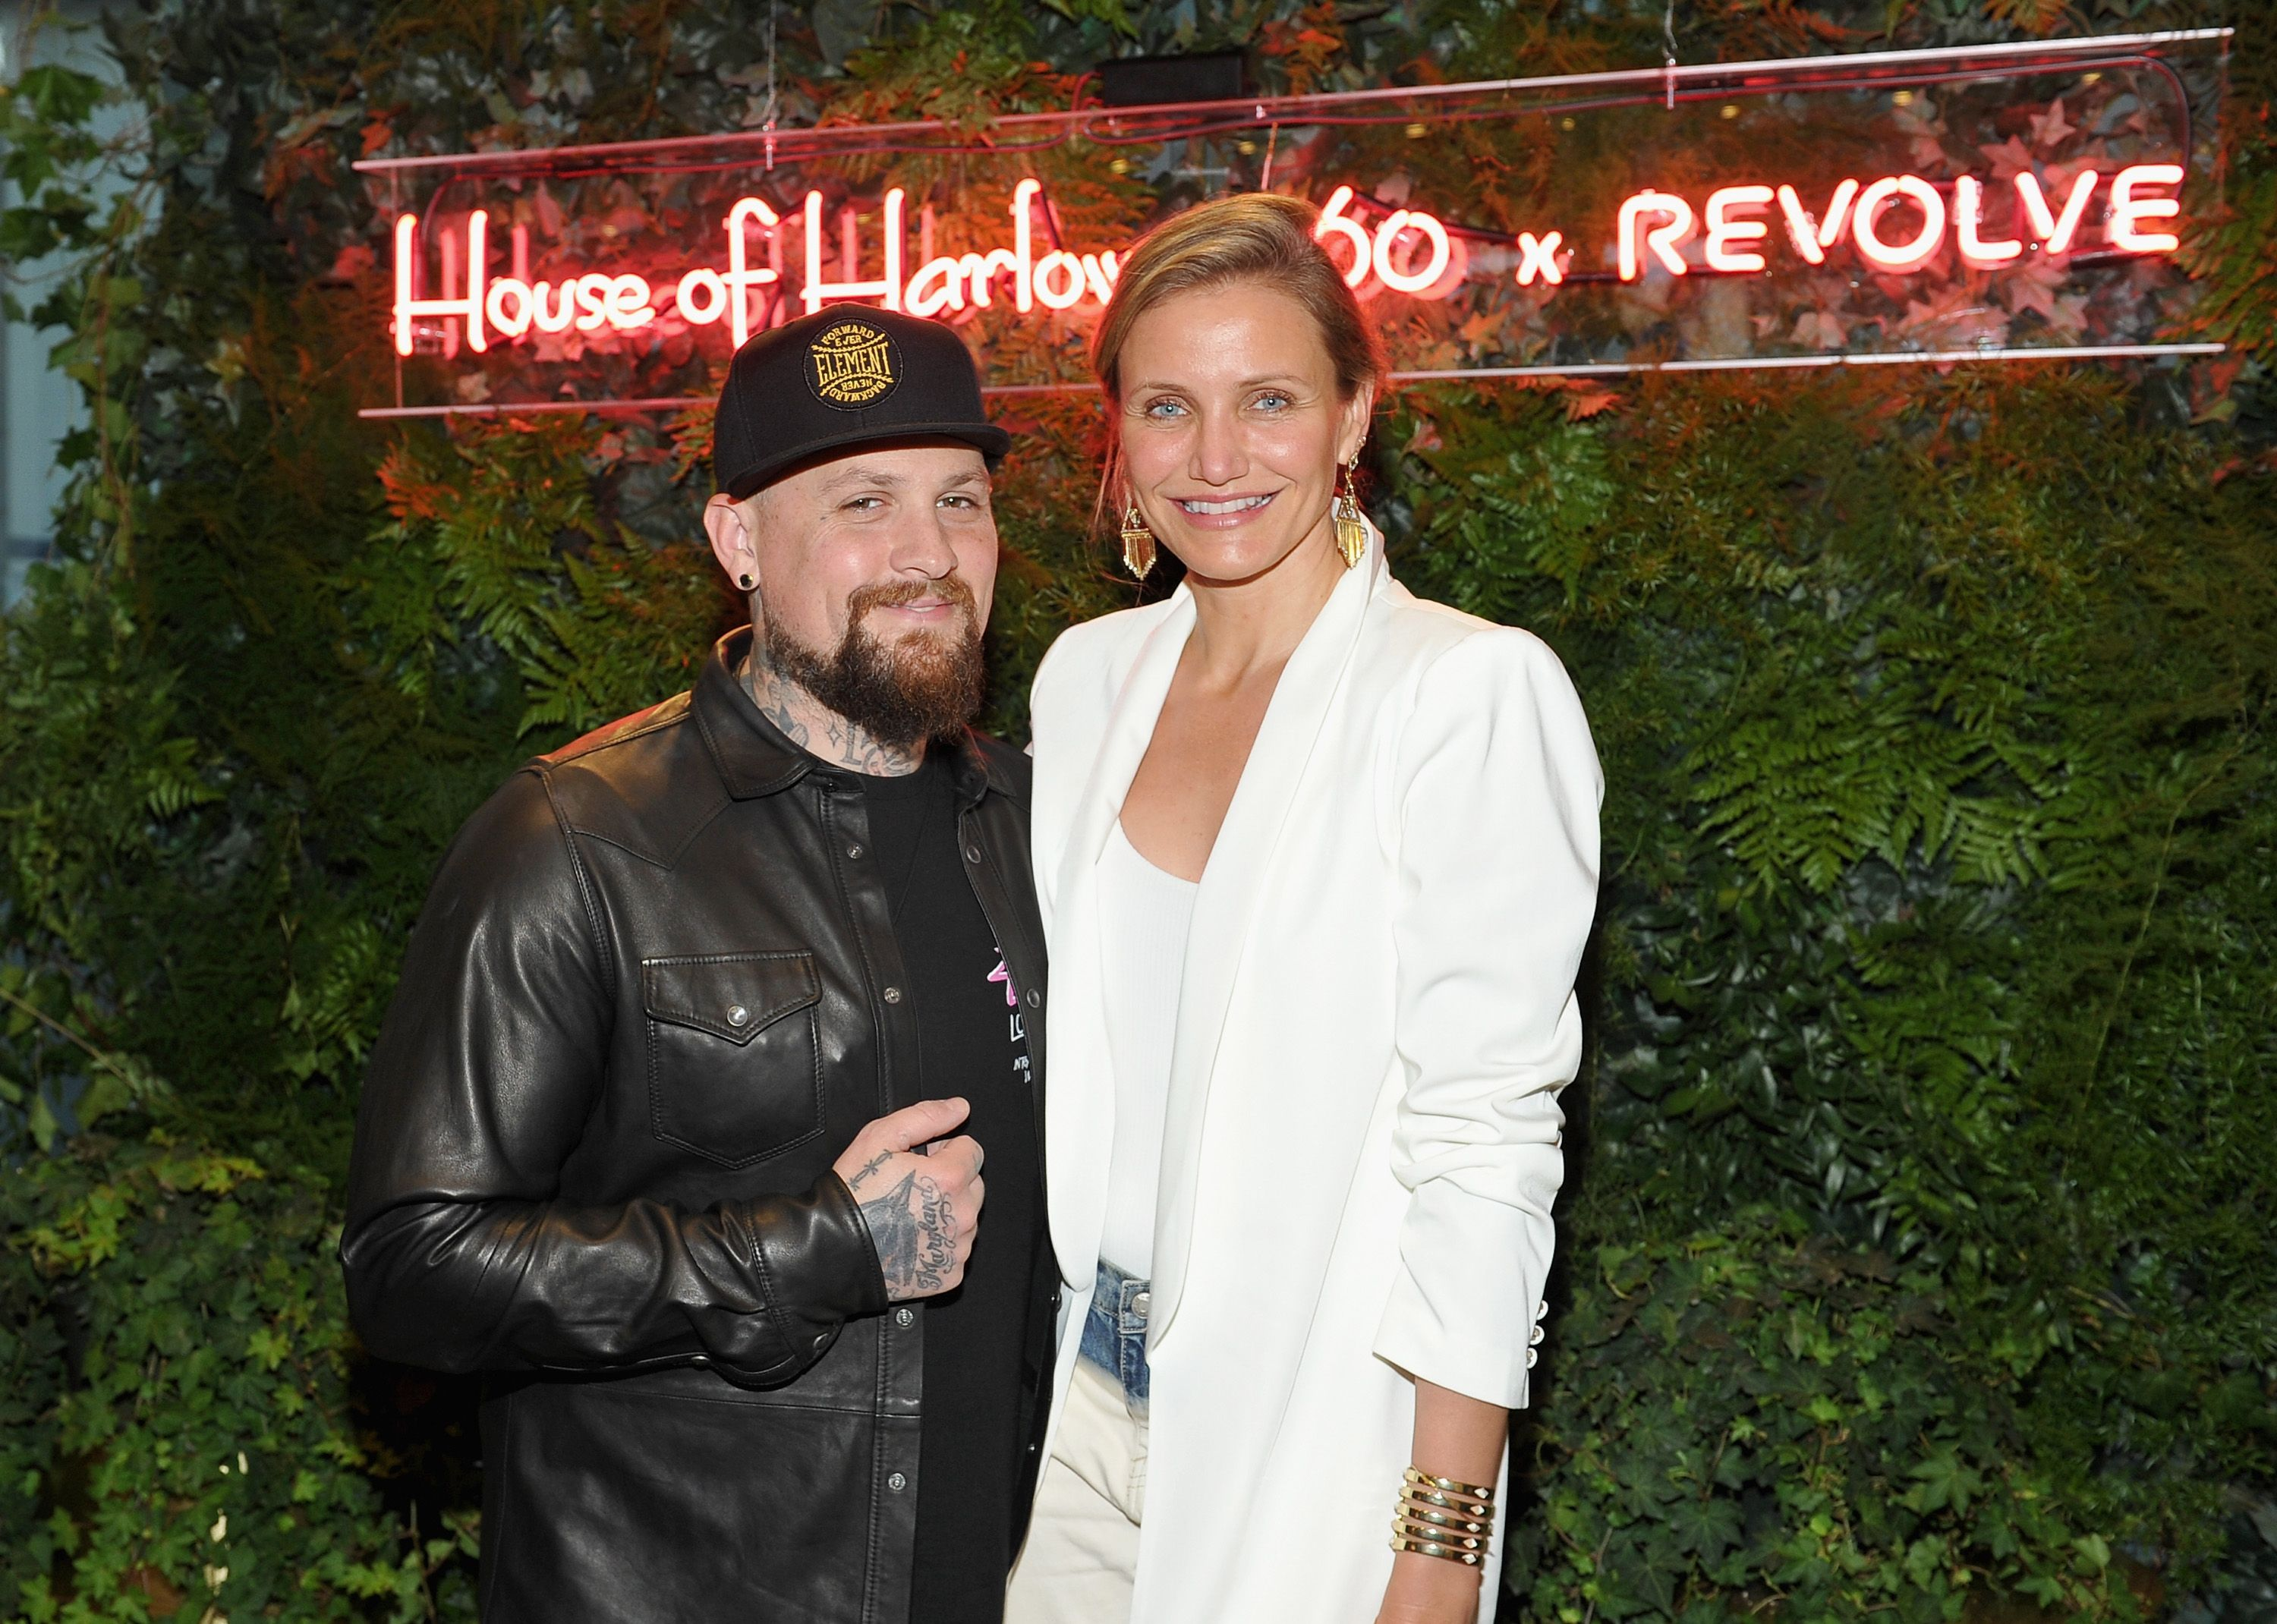 Guitarist Benji Madden and actress Cameron Diaz at House of Harlow 1960 x REVOLVE on June 2, 2016 | Photo: Getty Images